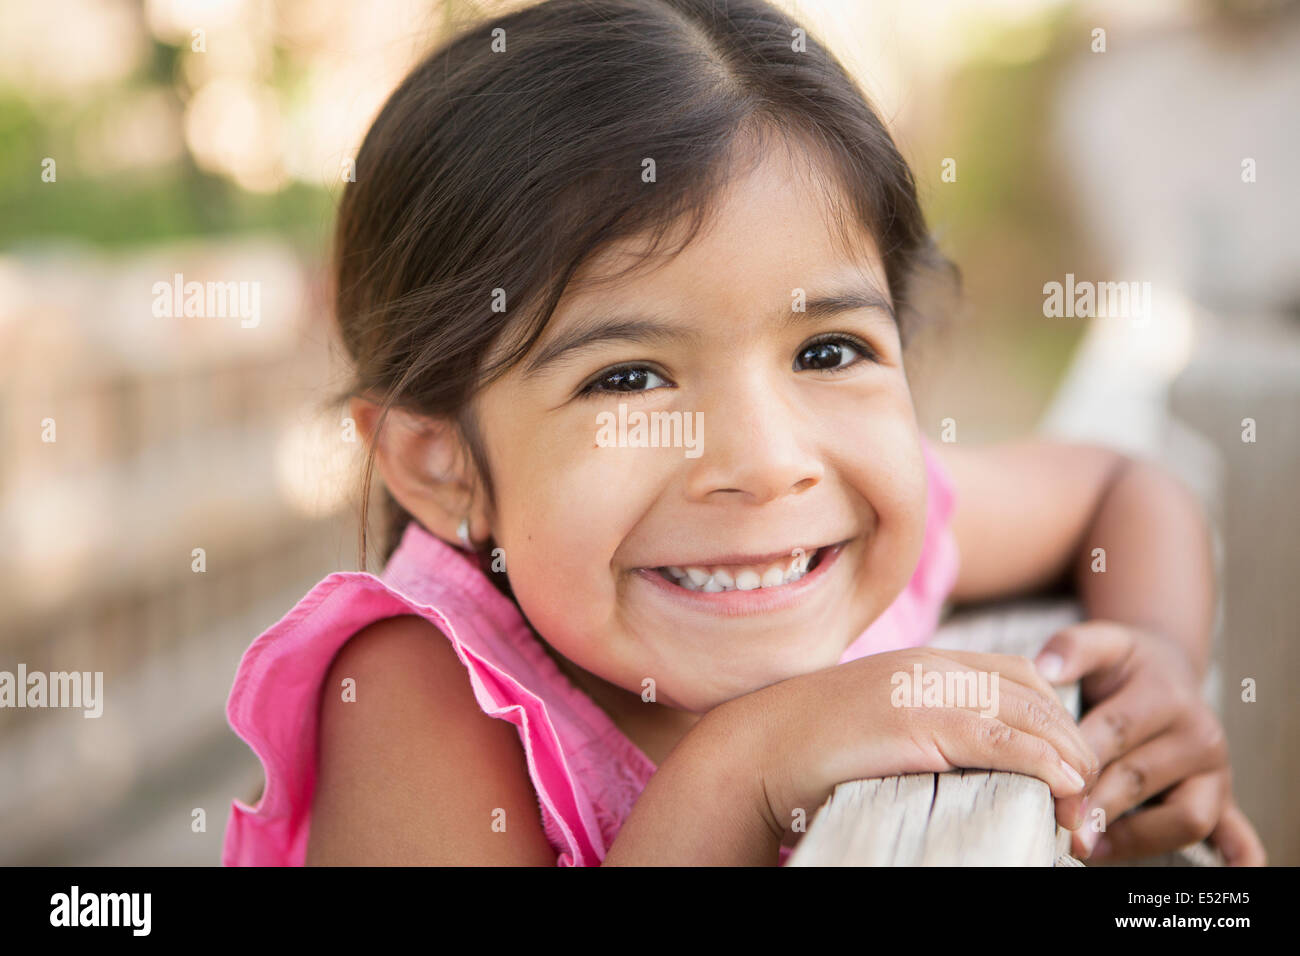 A young child, a girl smiling at the camera. - Stock Image